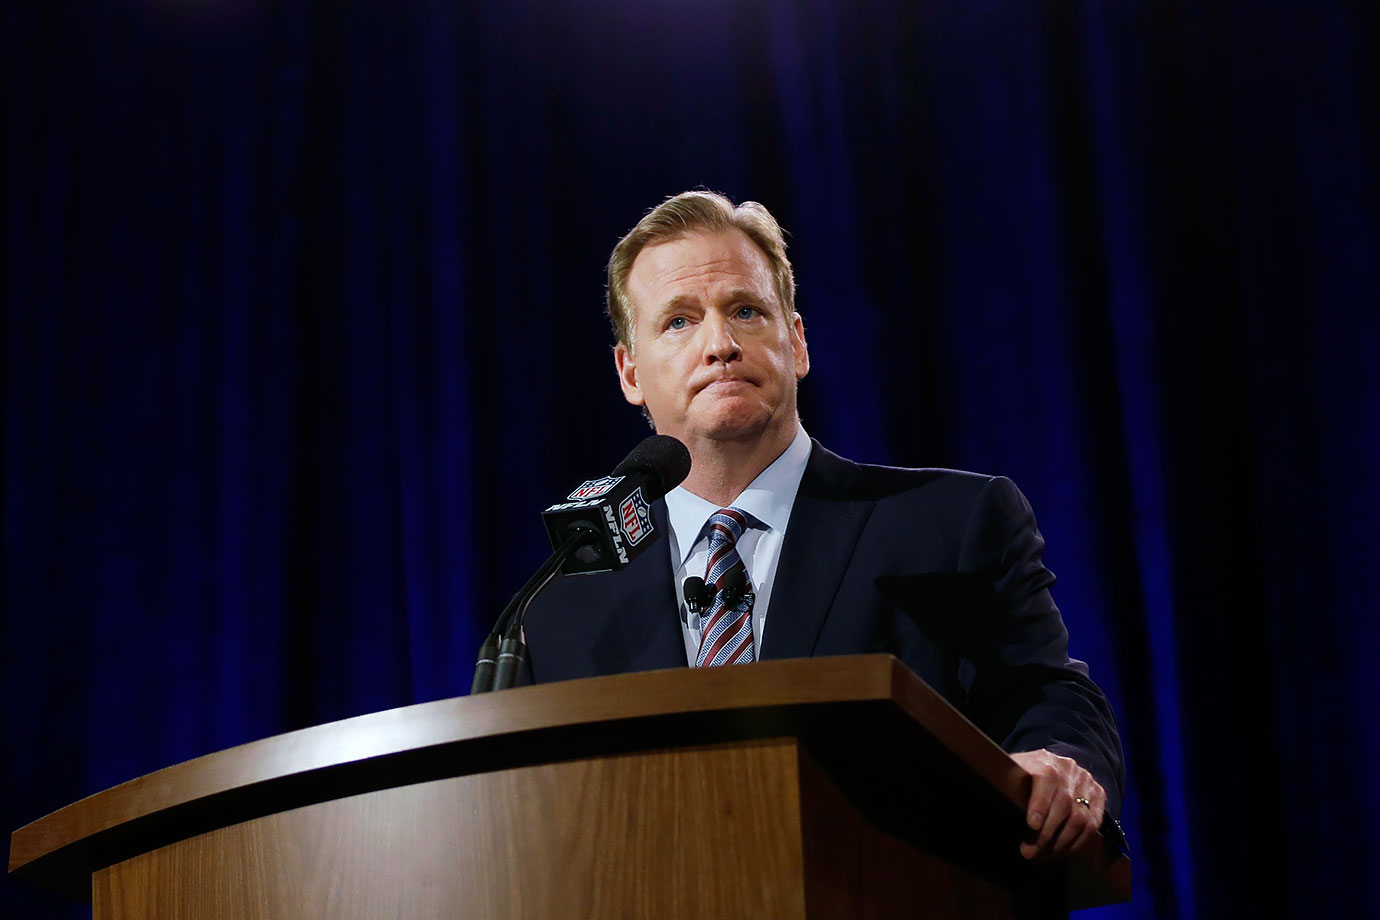 After getting skewered for being too lenient in the Ray Rice case, Goodell had two of his suspensions (Adrian Peterson's and Tom Brady's) thrown out in federal court. Not a good year for his version of justice.